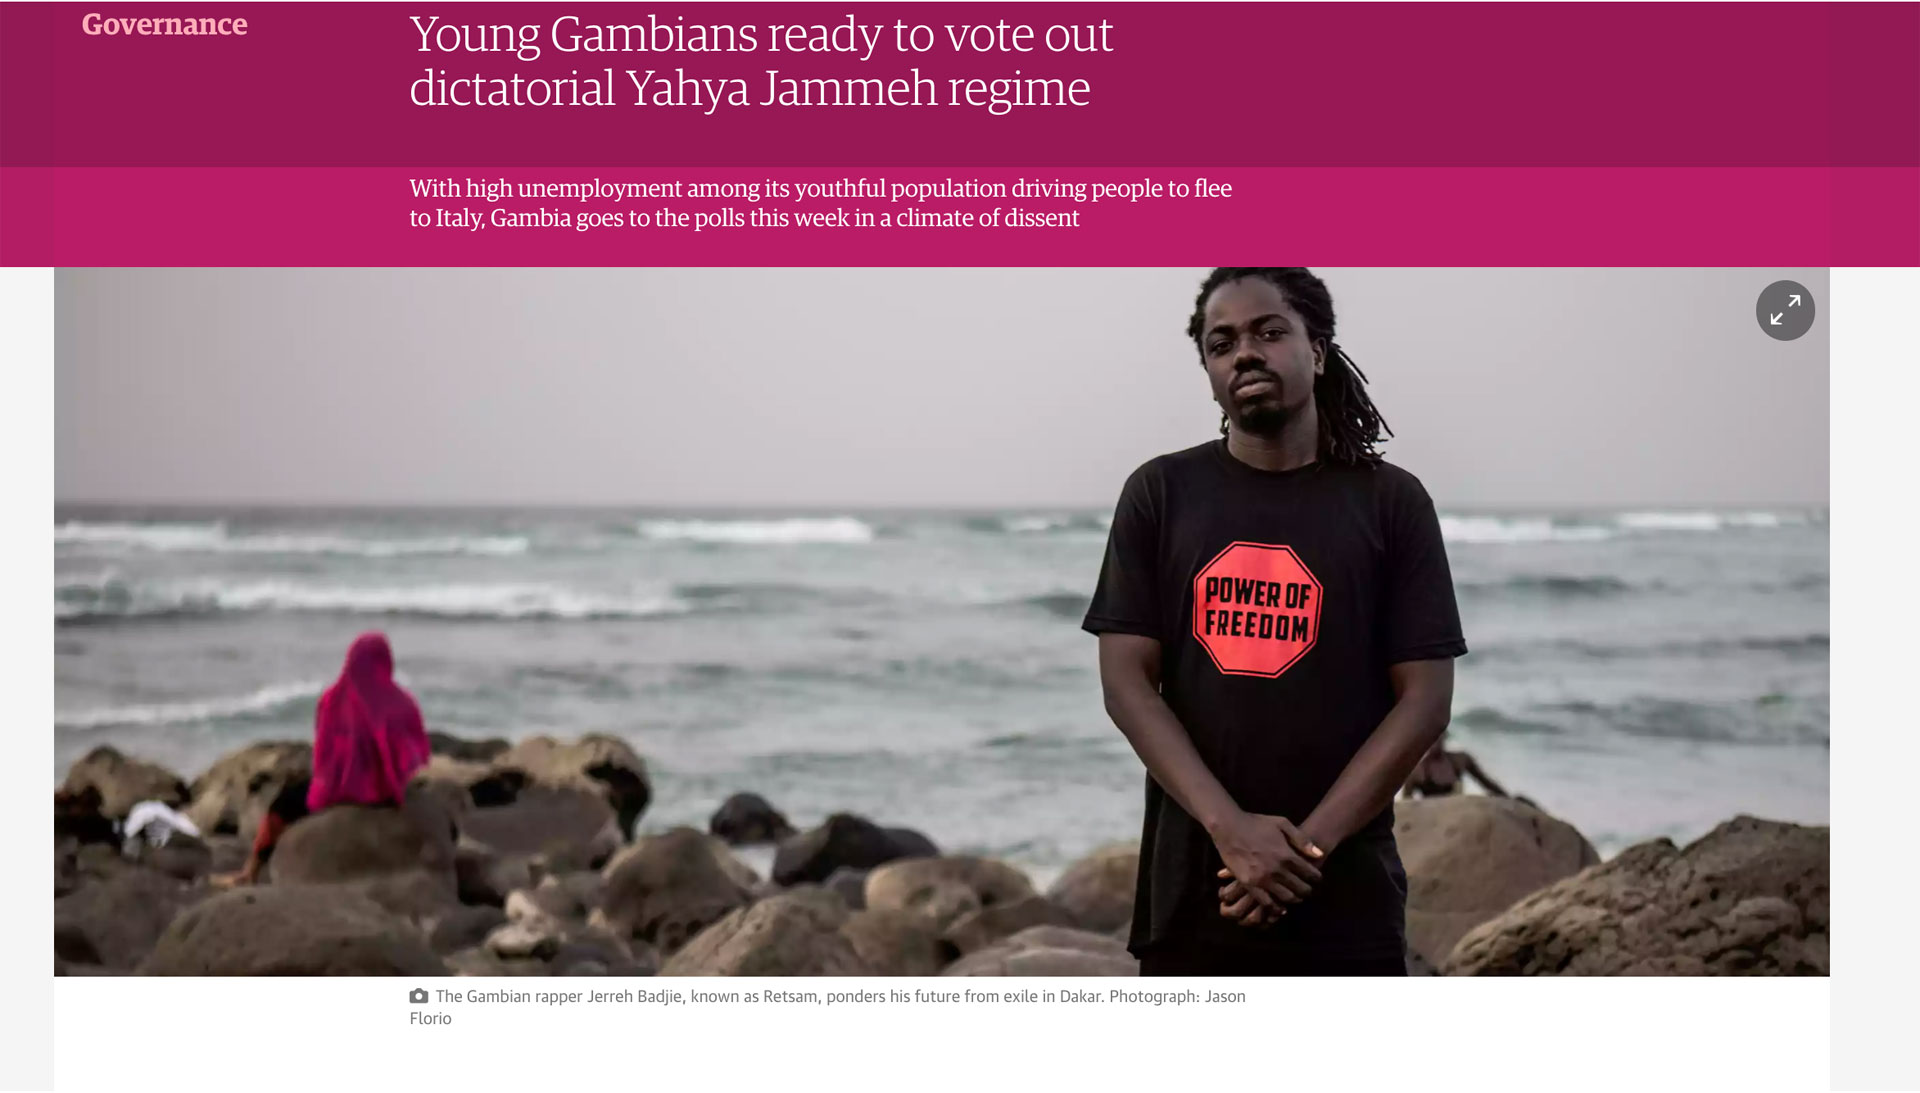 Press - Gambia goes to the elections, The Guardian - image © Jason Florio